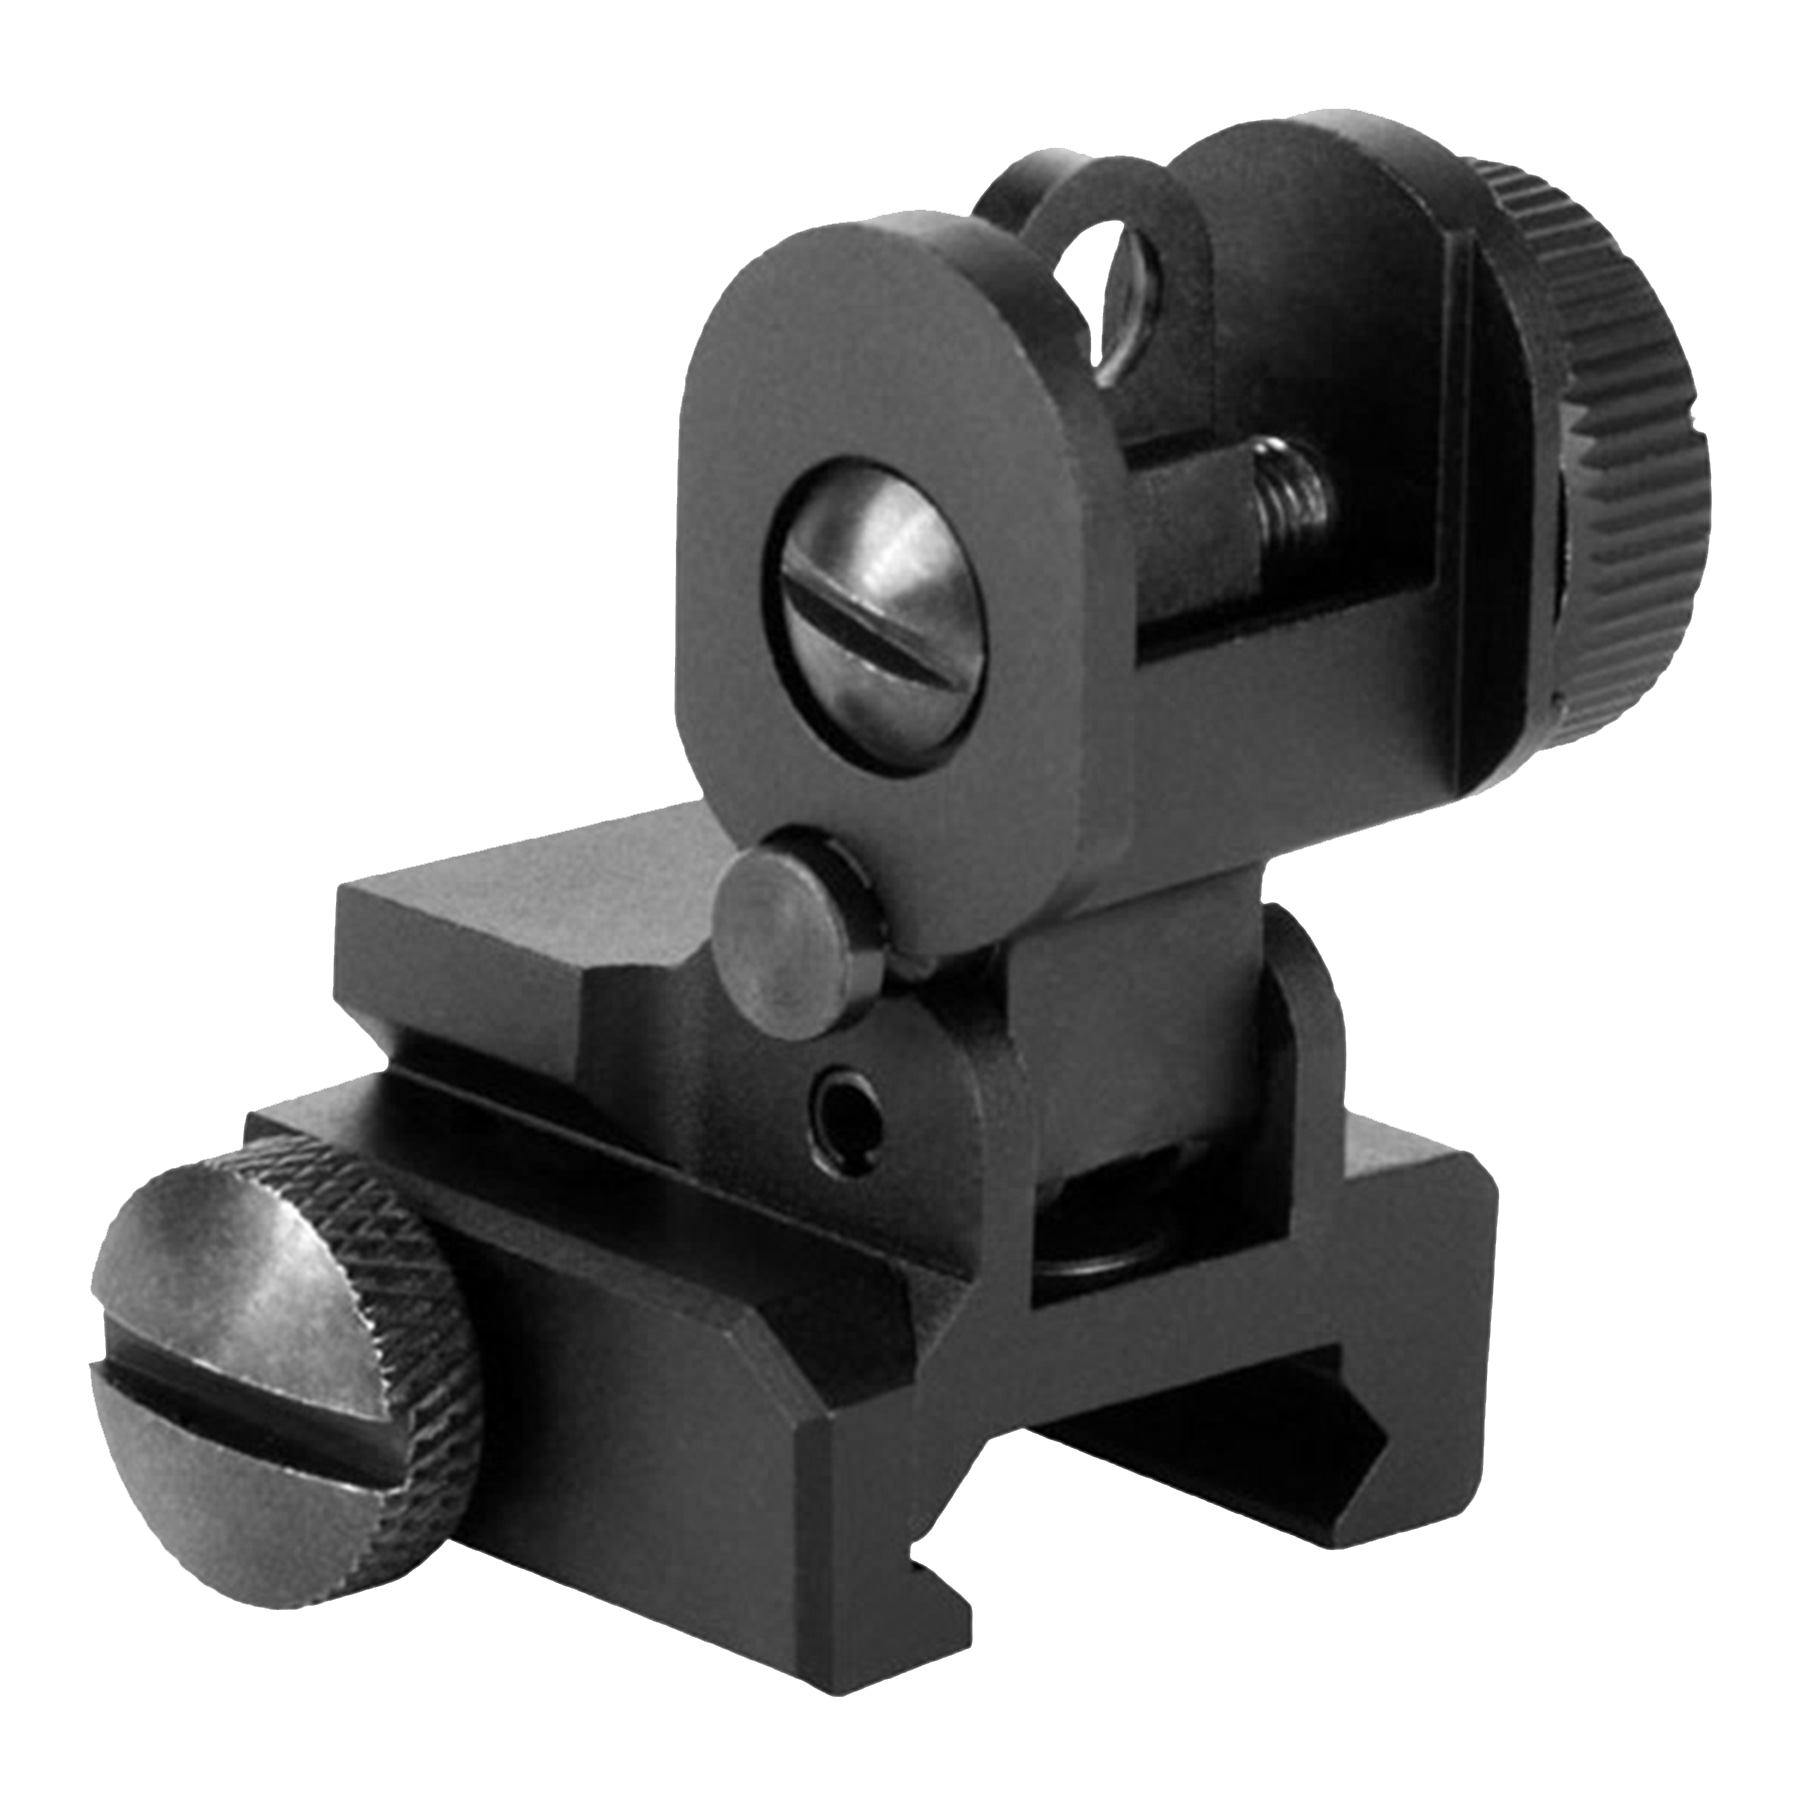 Aim Sports MT035 A2 Dual Aperture Rear Flip-Up Sight - AR-15/M16 Aluminum Black